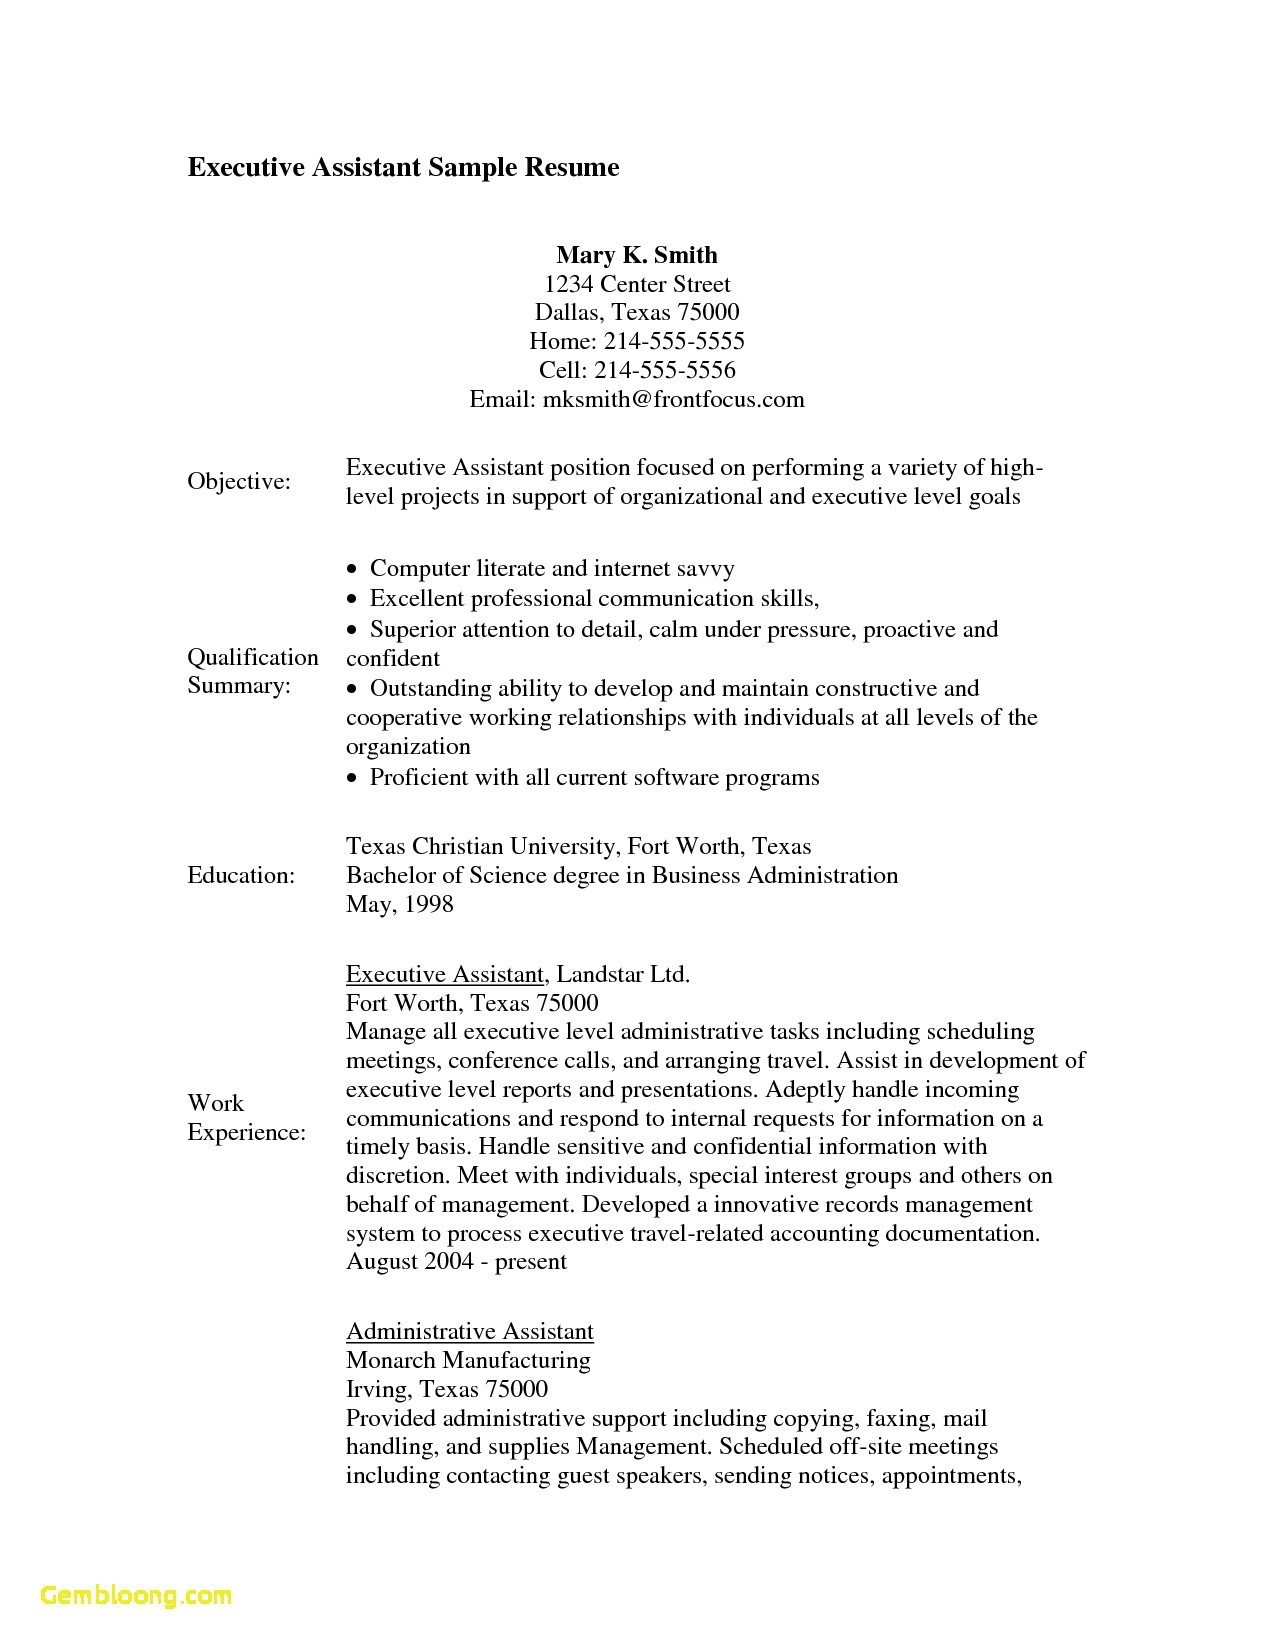 Executive assistant Resume - Medical assistant Resume New Inspirational Medical assistant Resumes